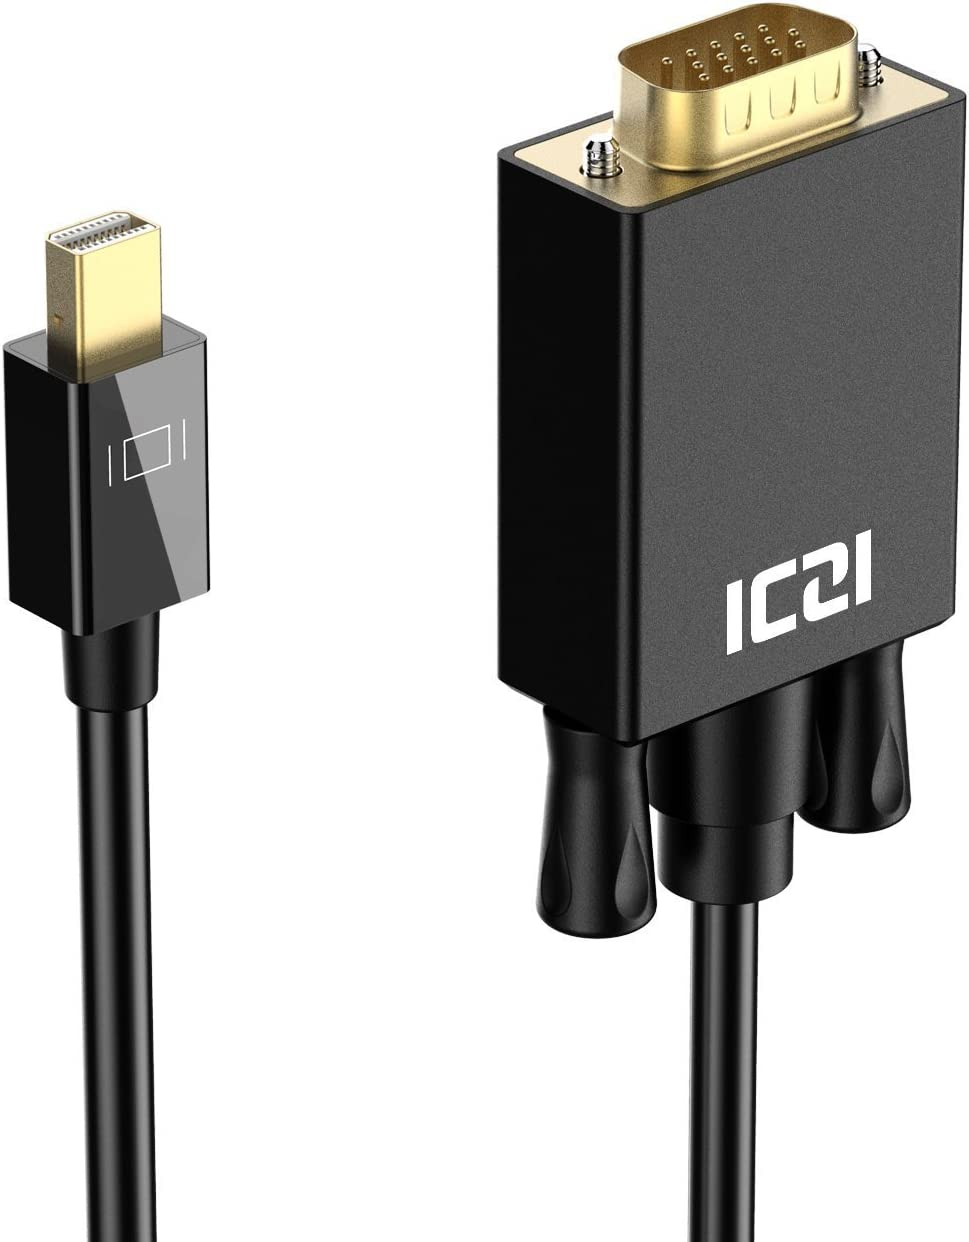 Iczi Mini Displayport Auf Vga Kabel 1 8m 1080p 60hz Elektronik